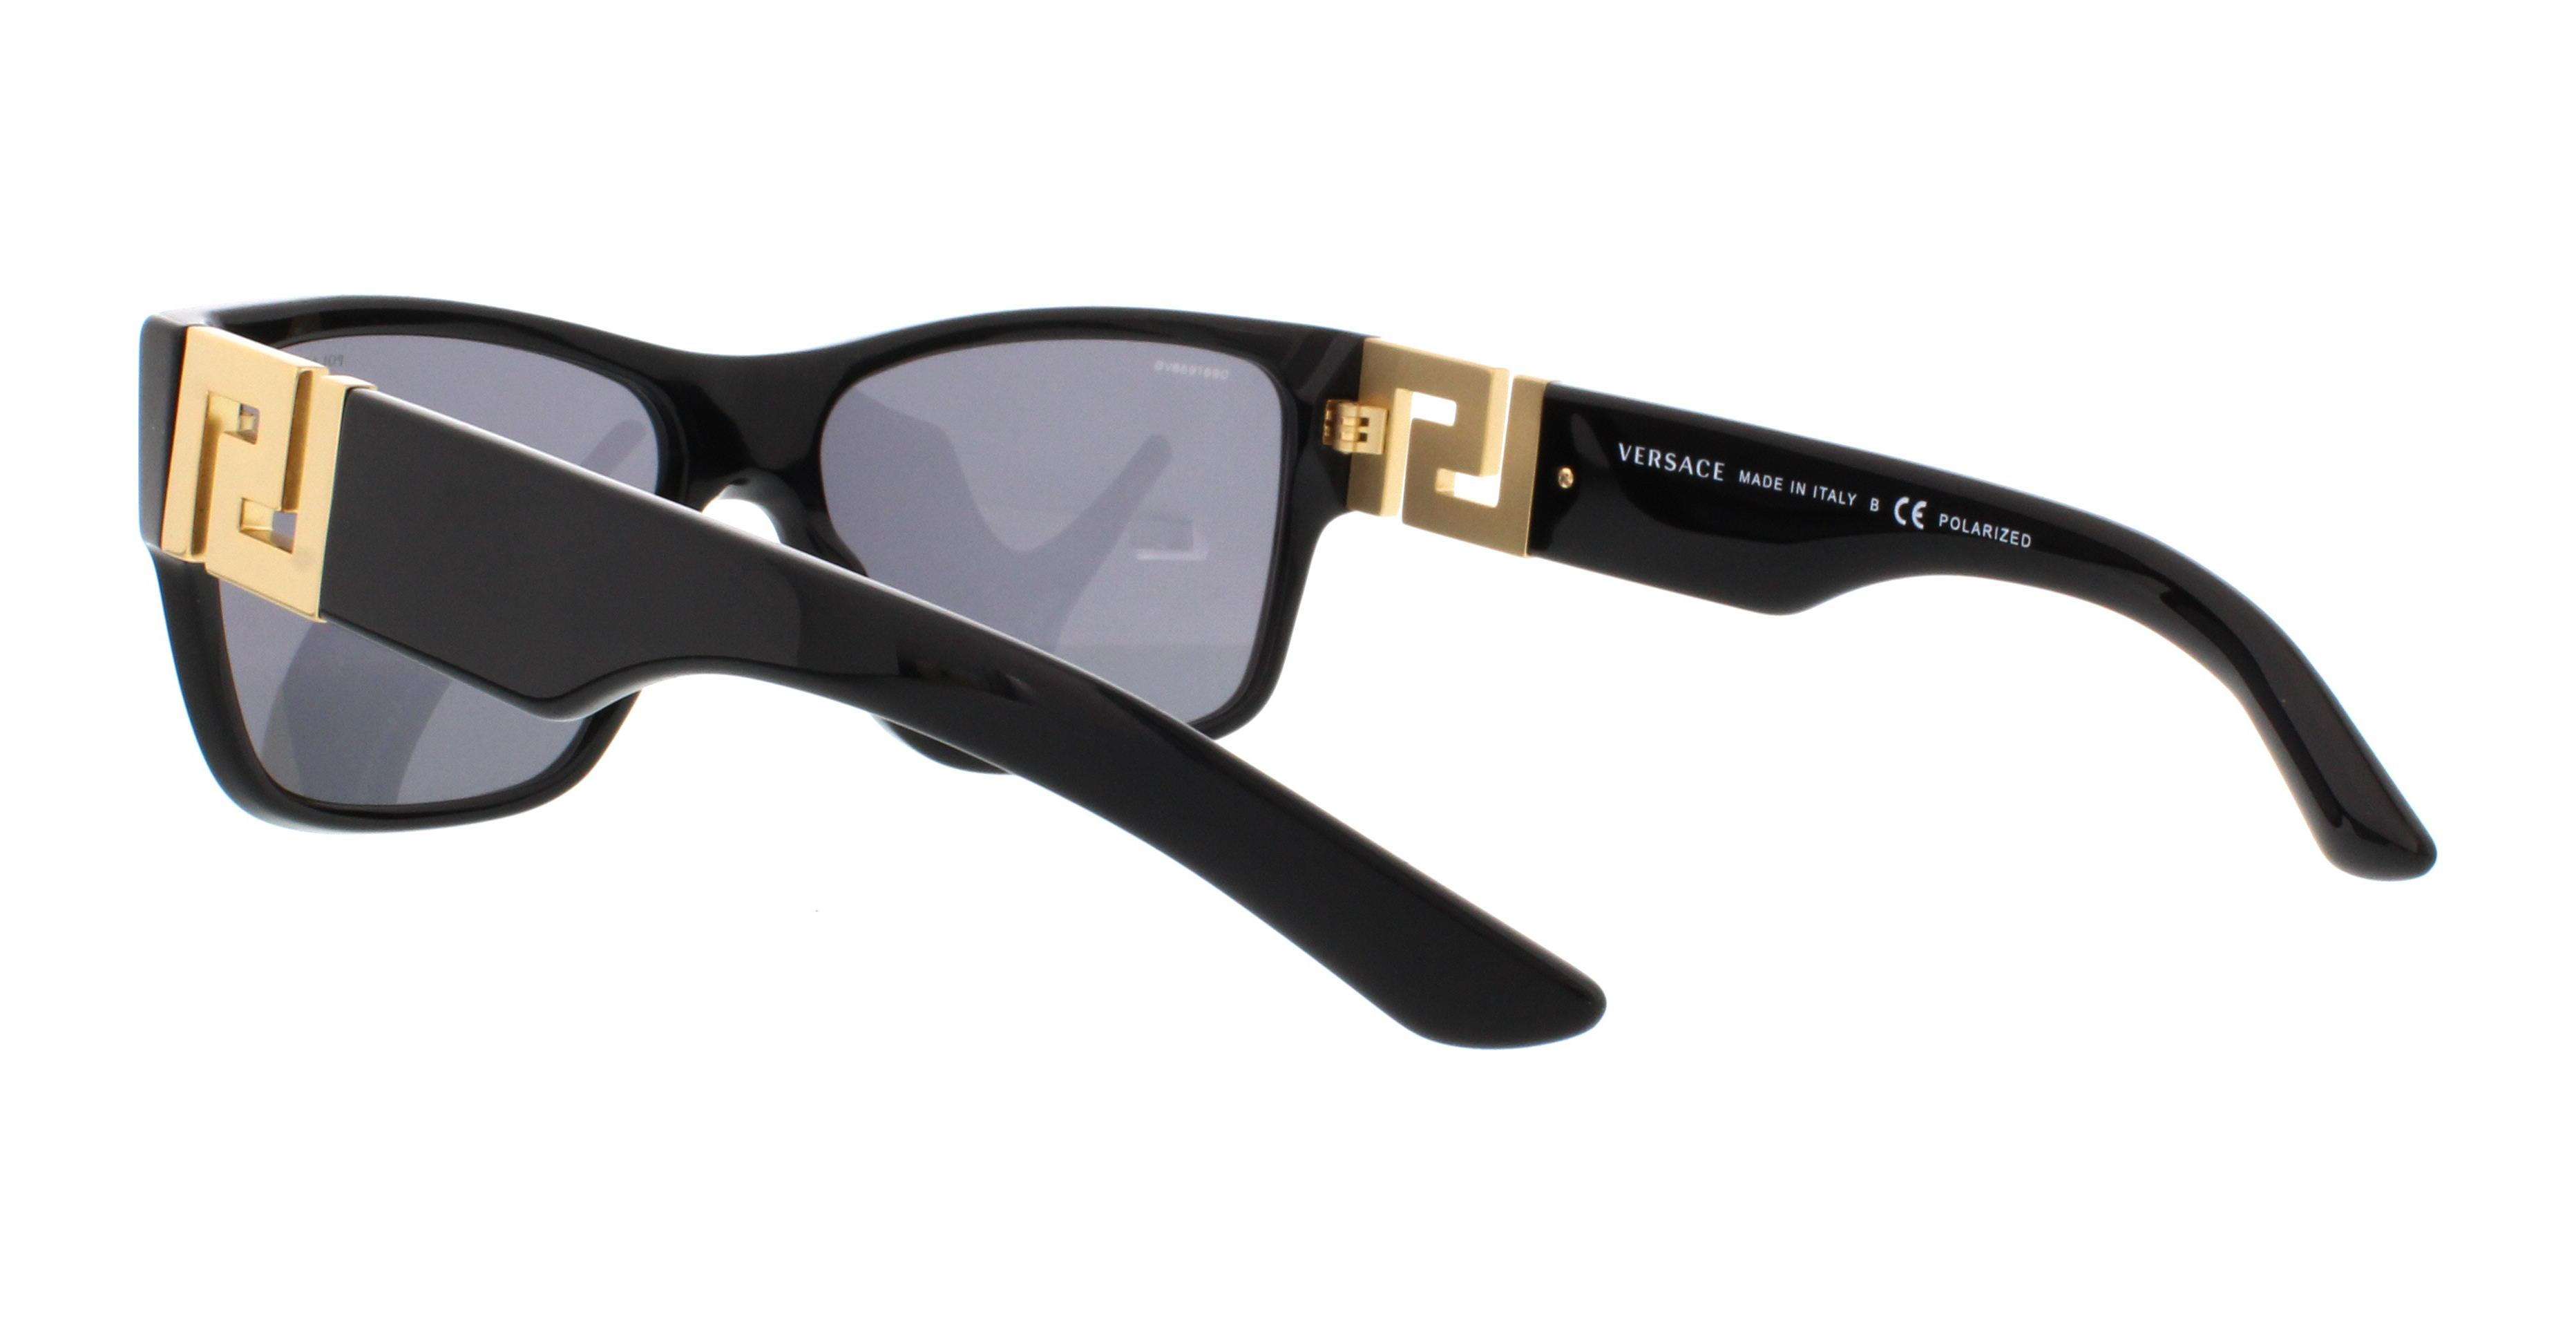 9c3a1abaed4 Versace - VERSACE Sunglasses VE4296 GB1 81 Black 59MM - Walmart.com